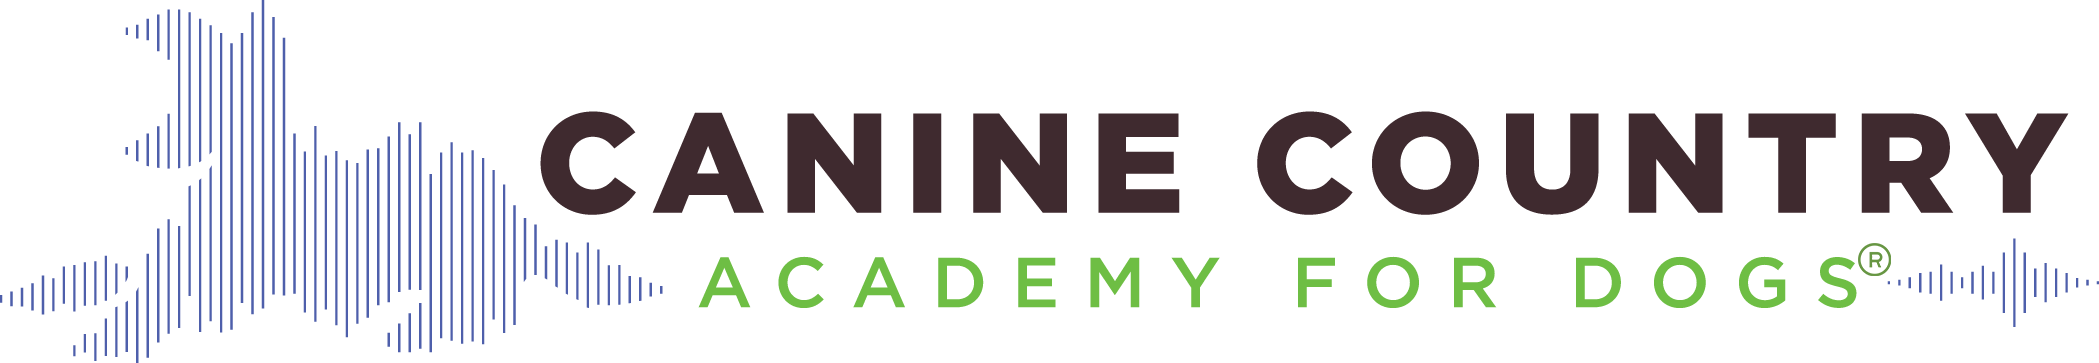 Canine Country Academy